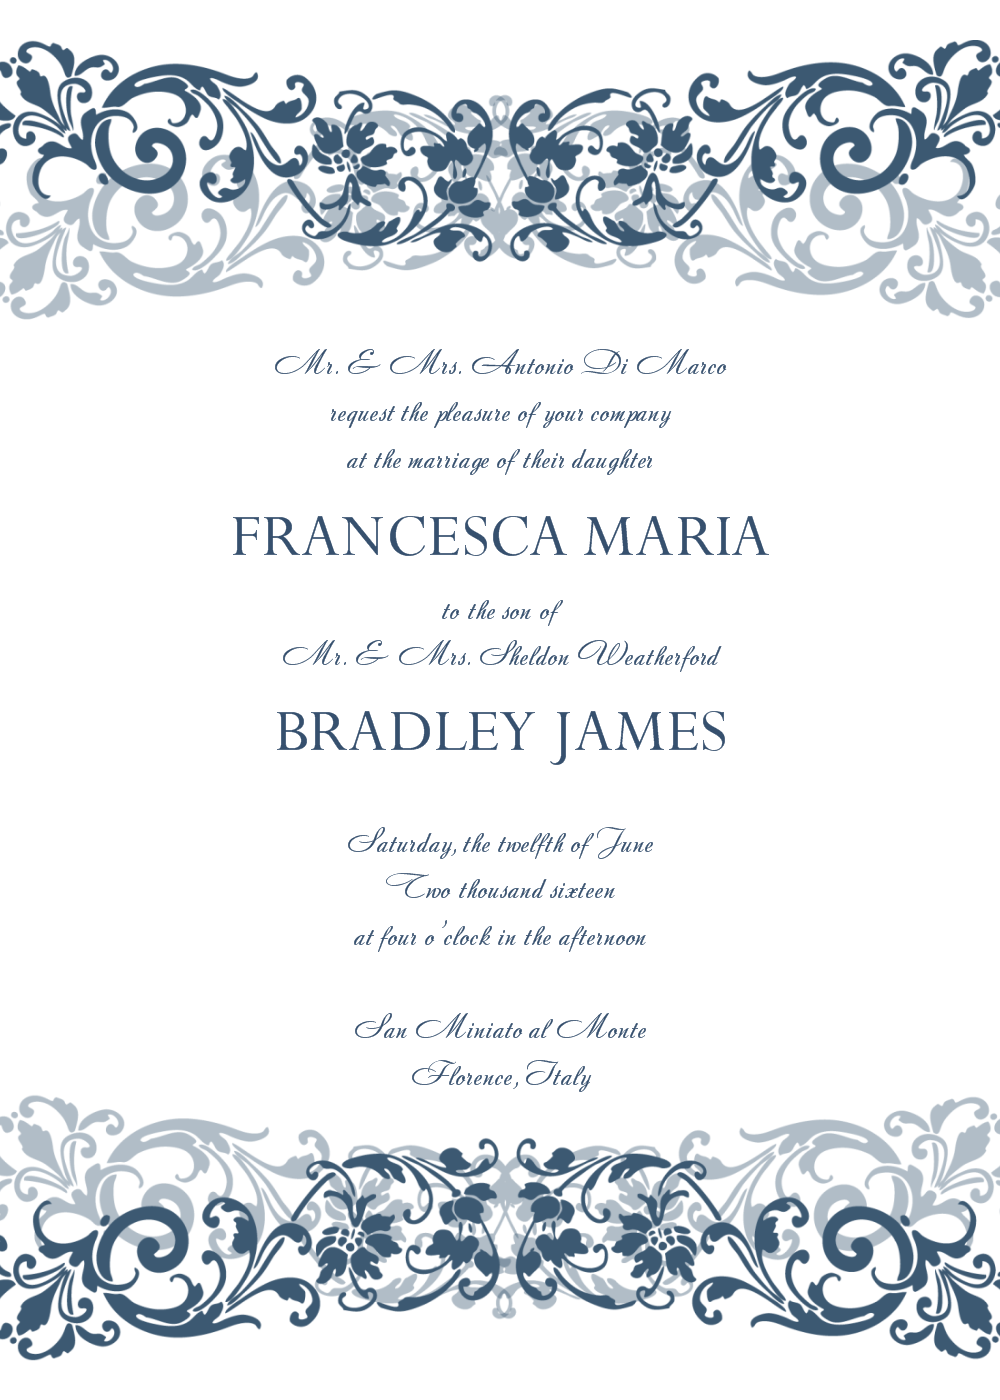 30 free wedding invitations templates 21st bridal world 30 free wedding invitations templates 21st bridal world wedding lists and trends stopboris Images